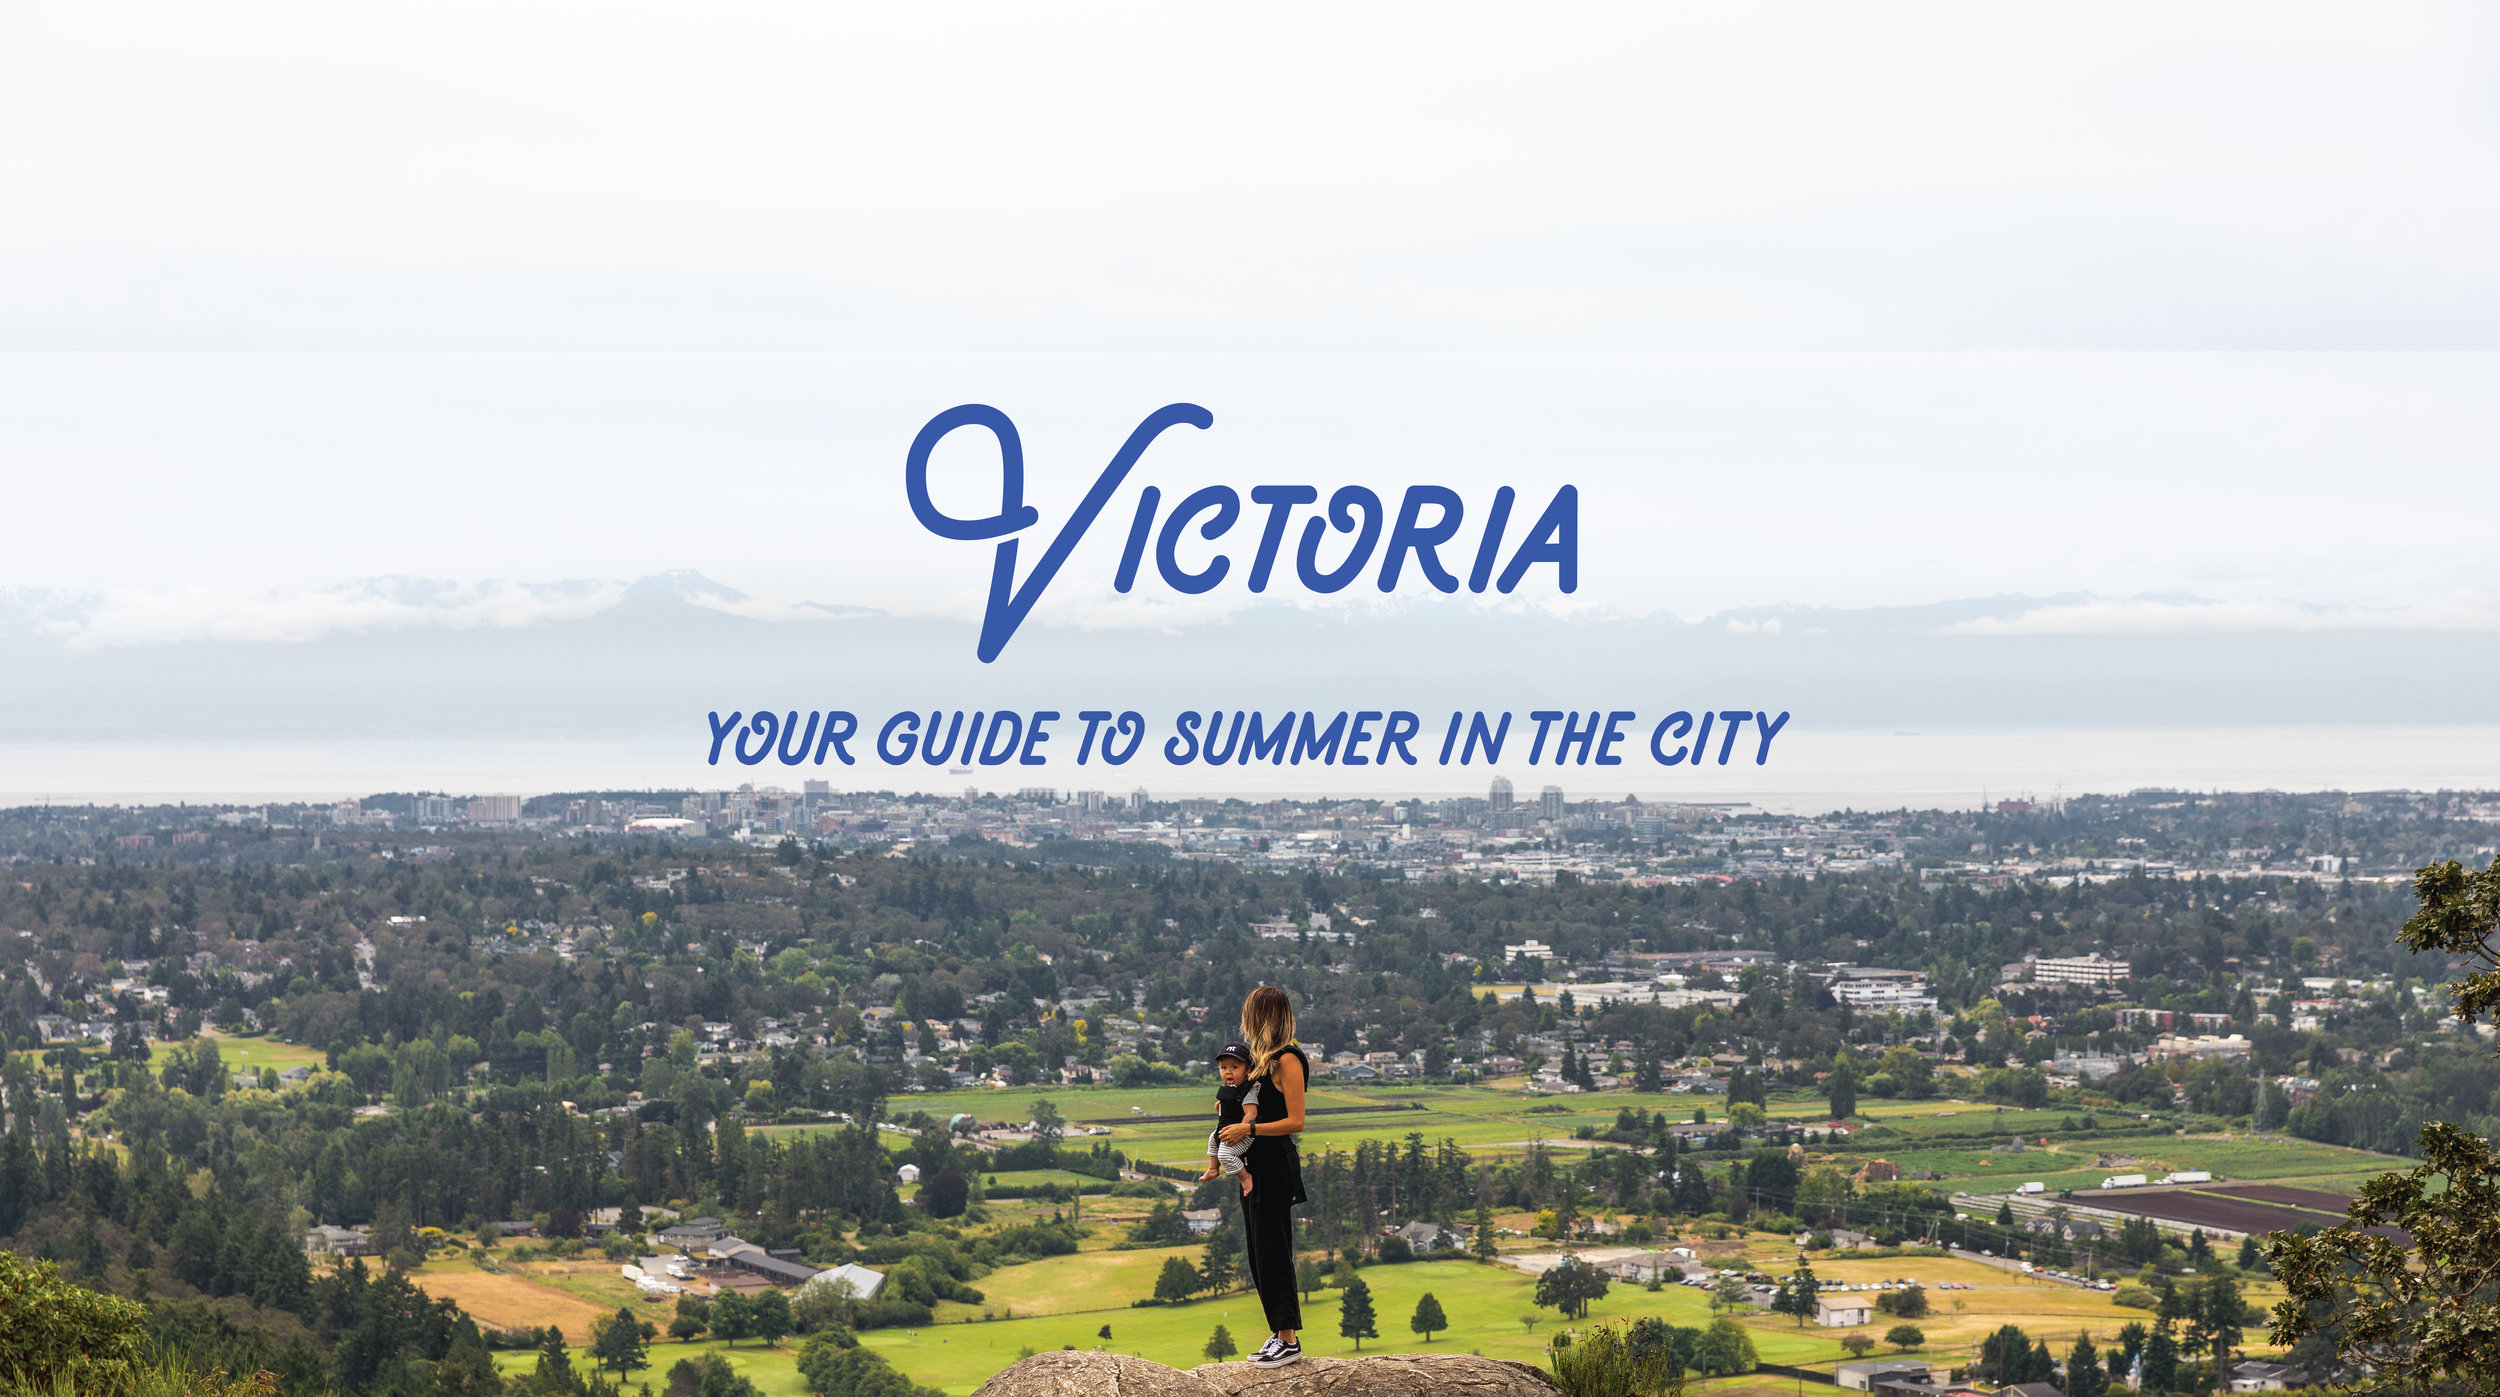 Victoria: Your Guide to Summer in the City